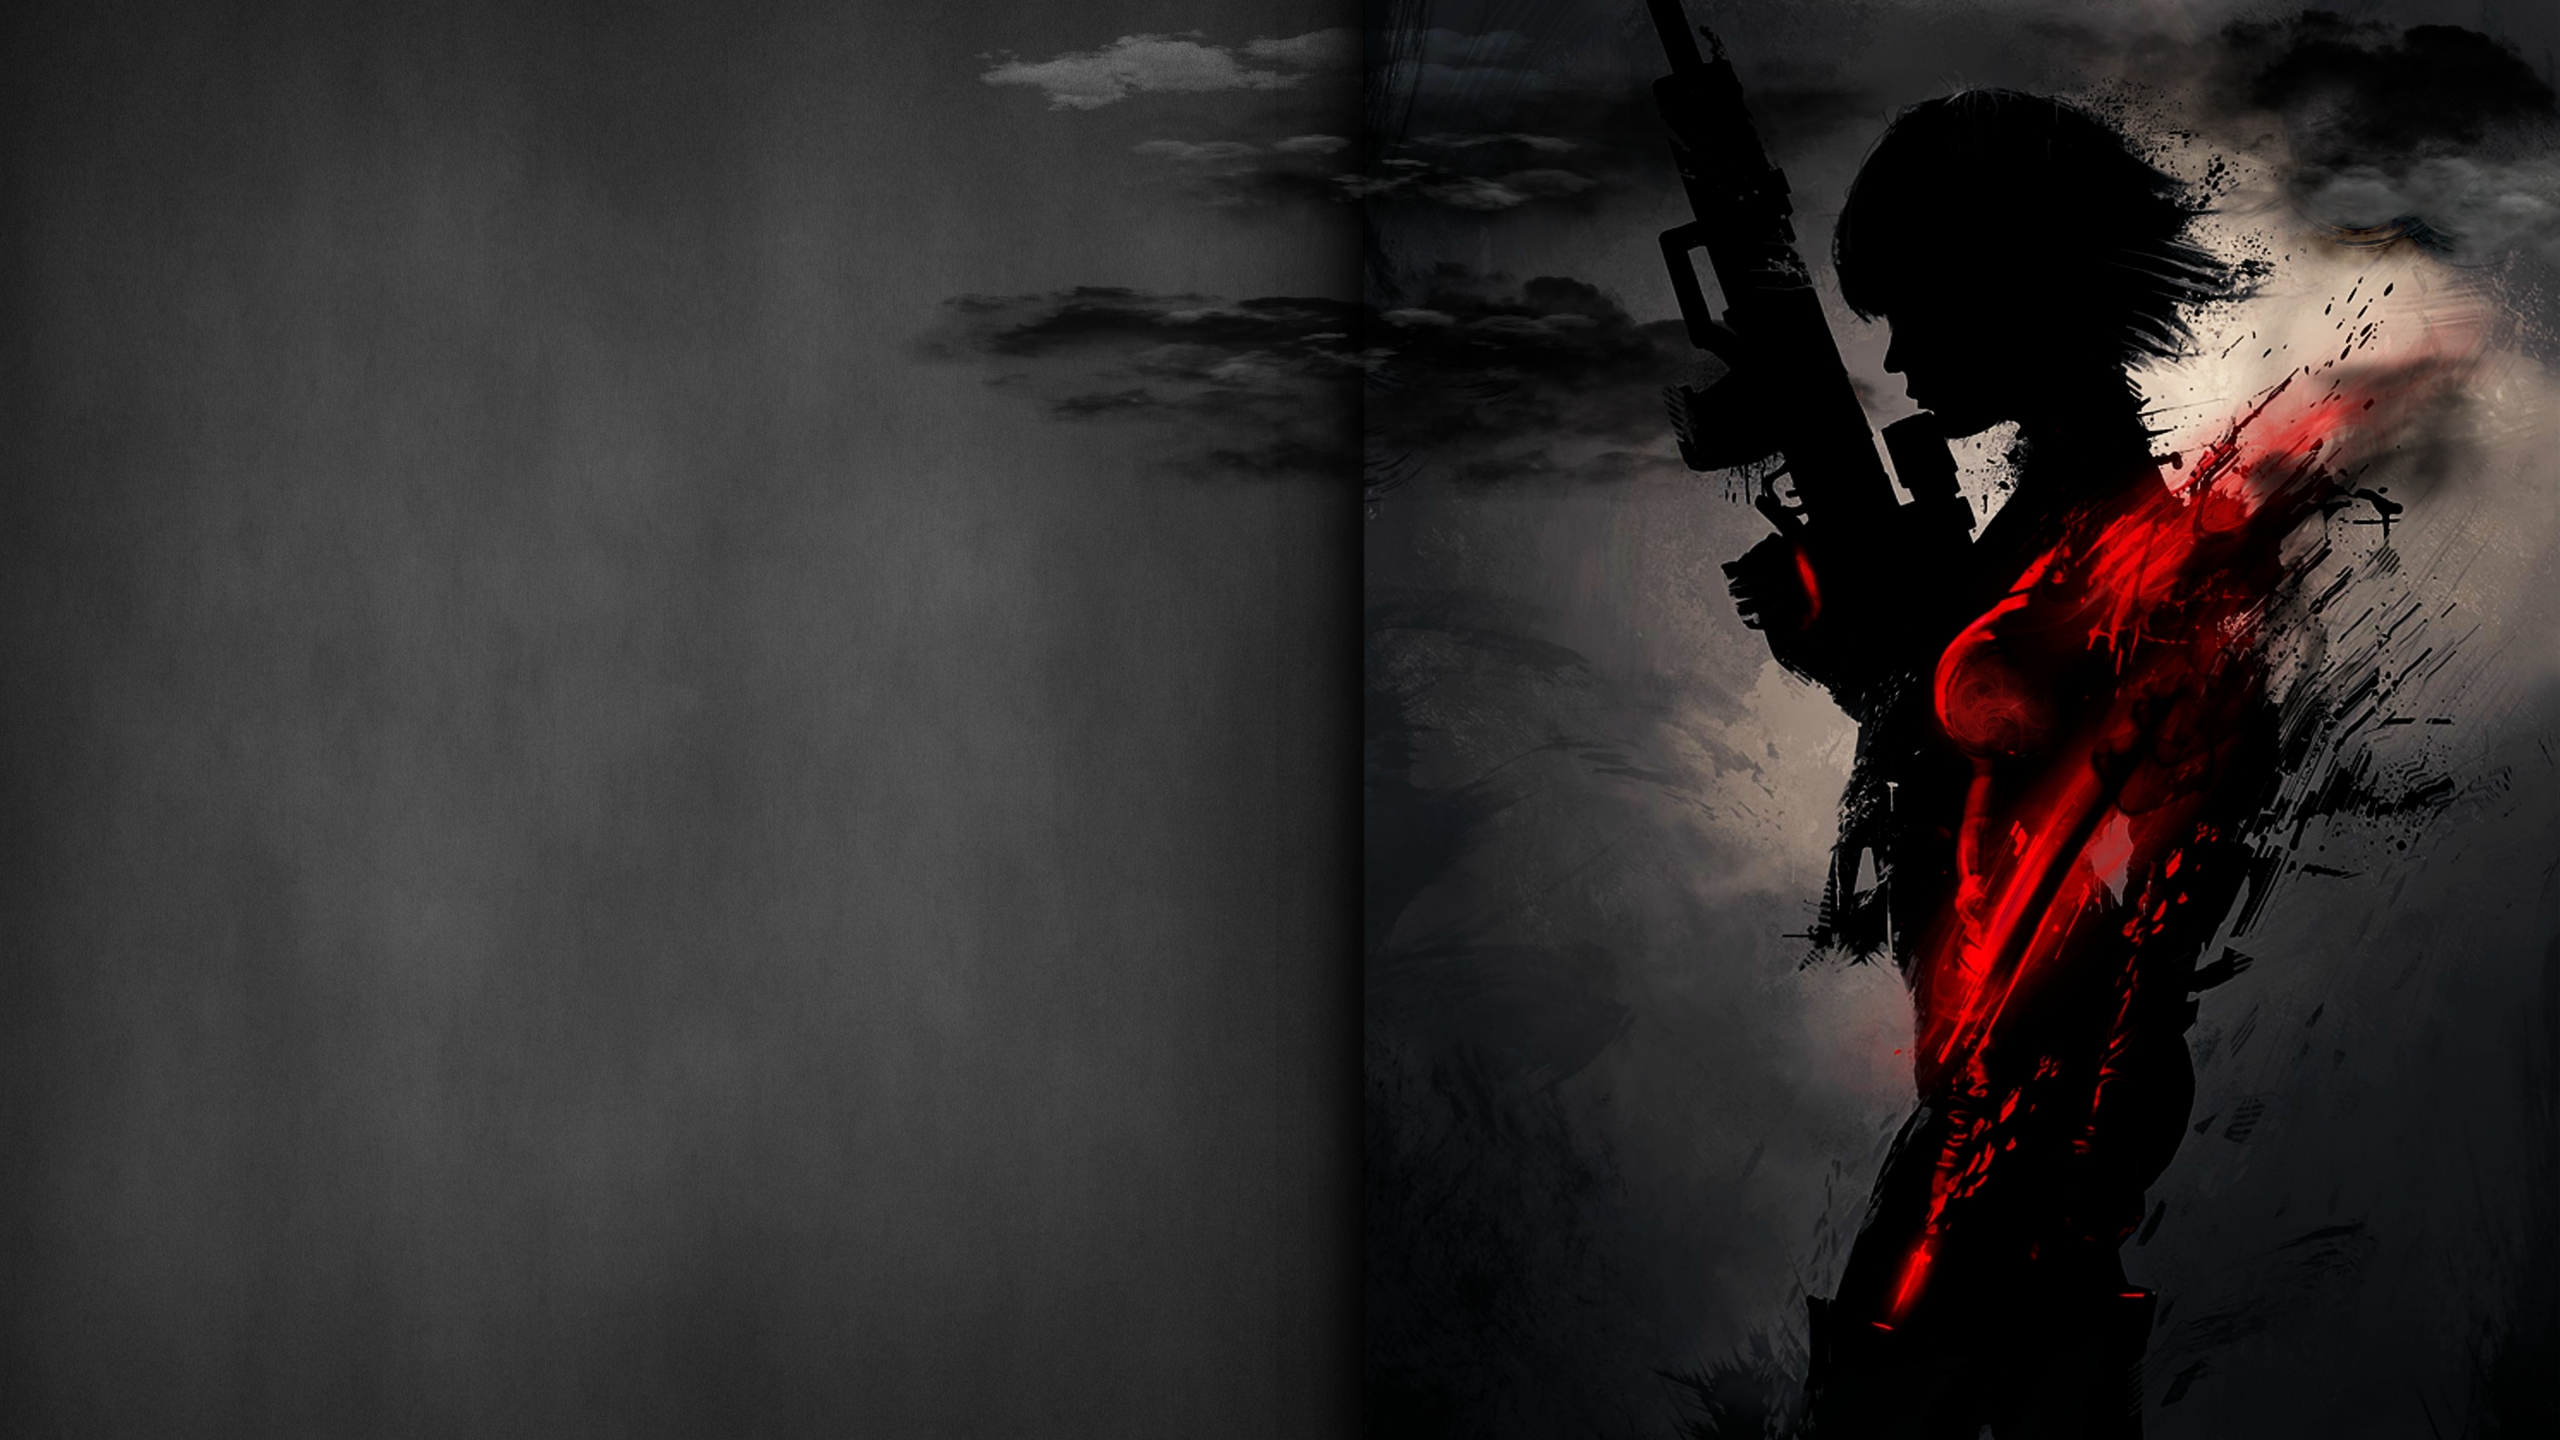 2560x1440 Sniper Artwork Dark Red 4k 1440p Resolution Hd 4k